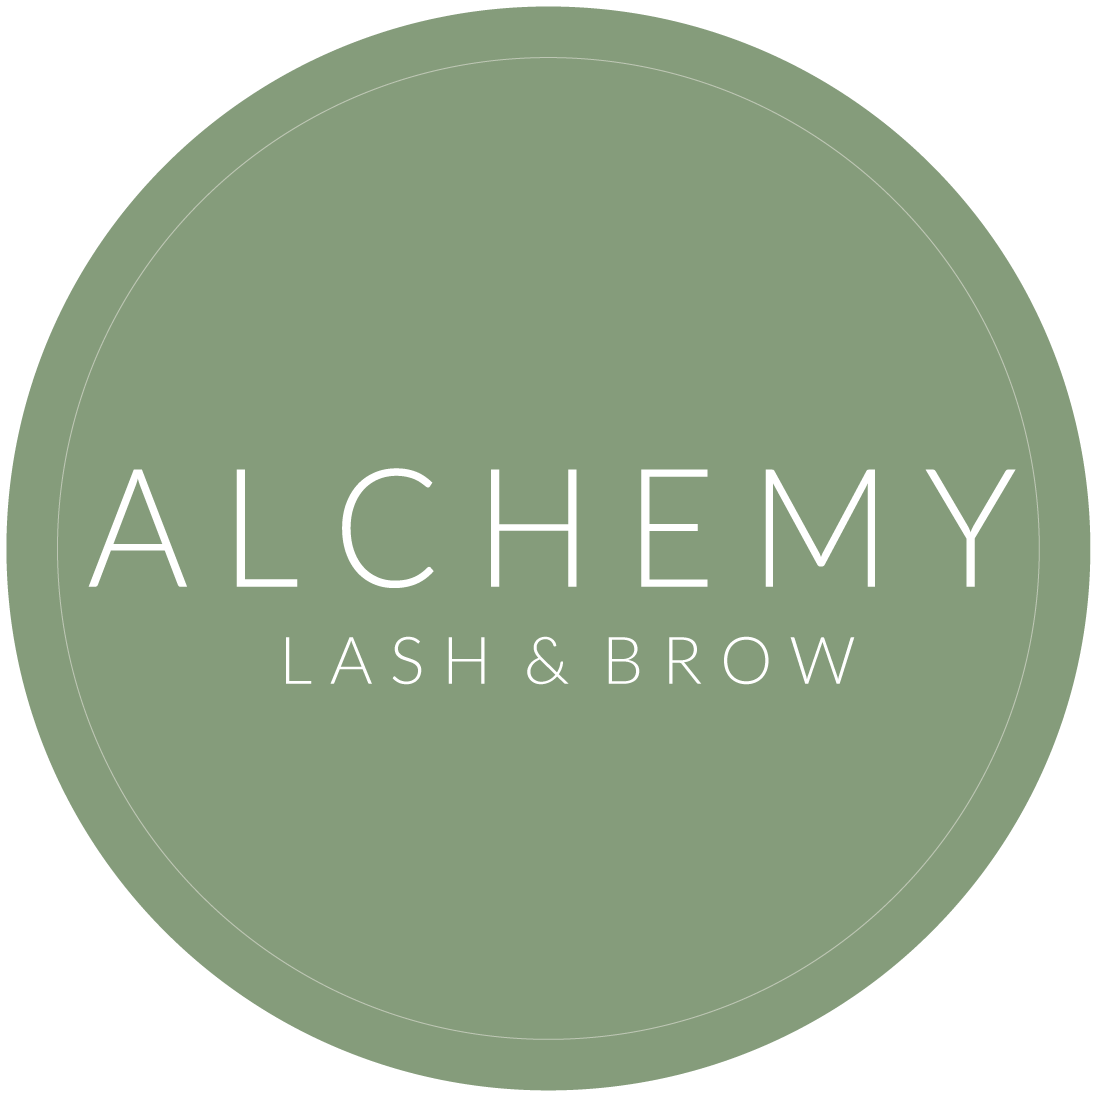 Alchemy Lash & Brow